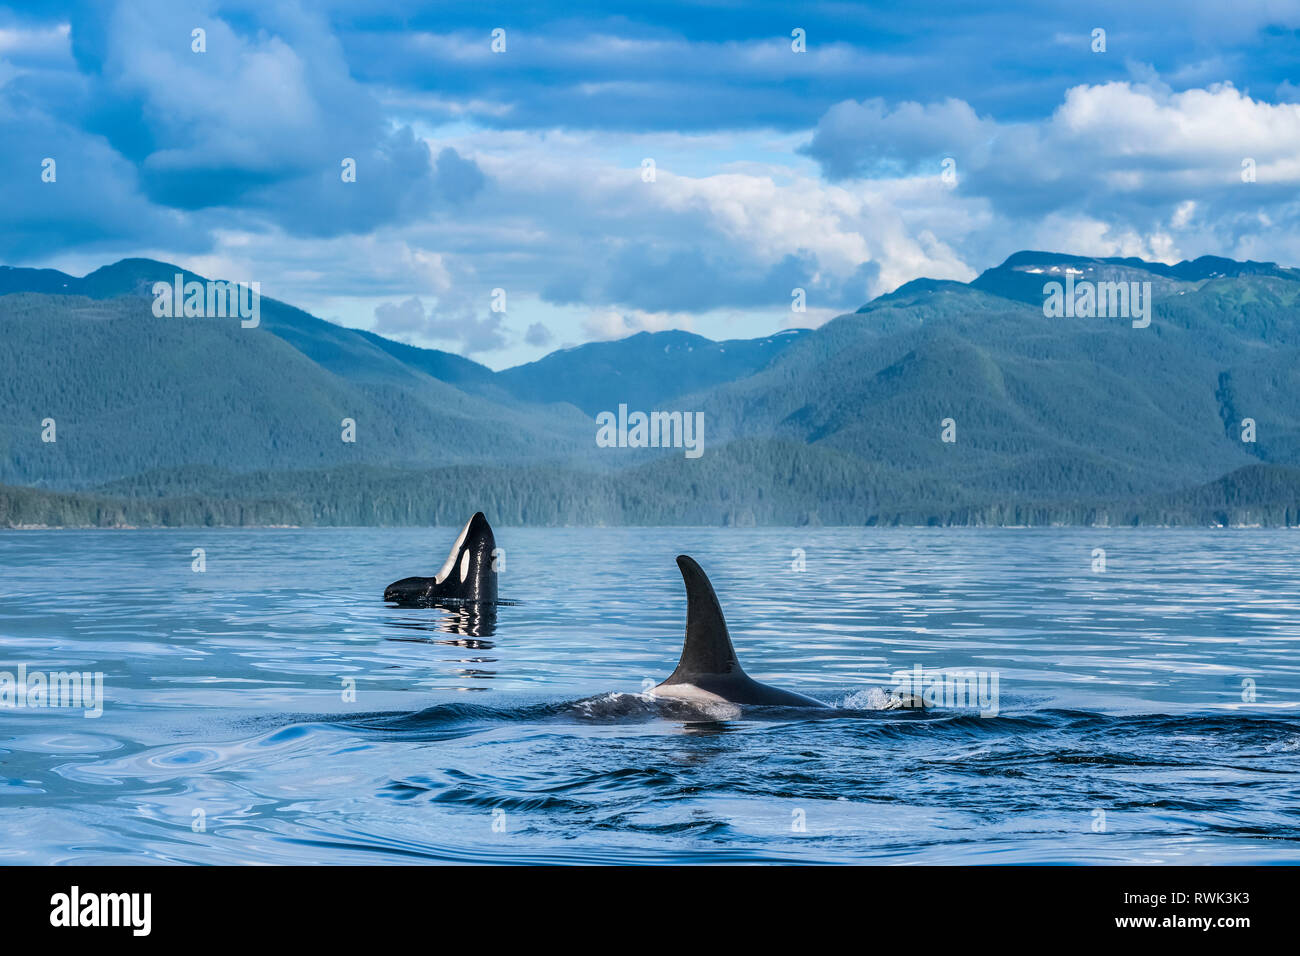 Orcas (Orcinus orca), also known as a Killer Whales, surface in Chatham Strait, spy hop in background, Inside Passage - Stock Image